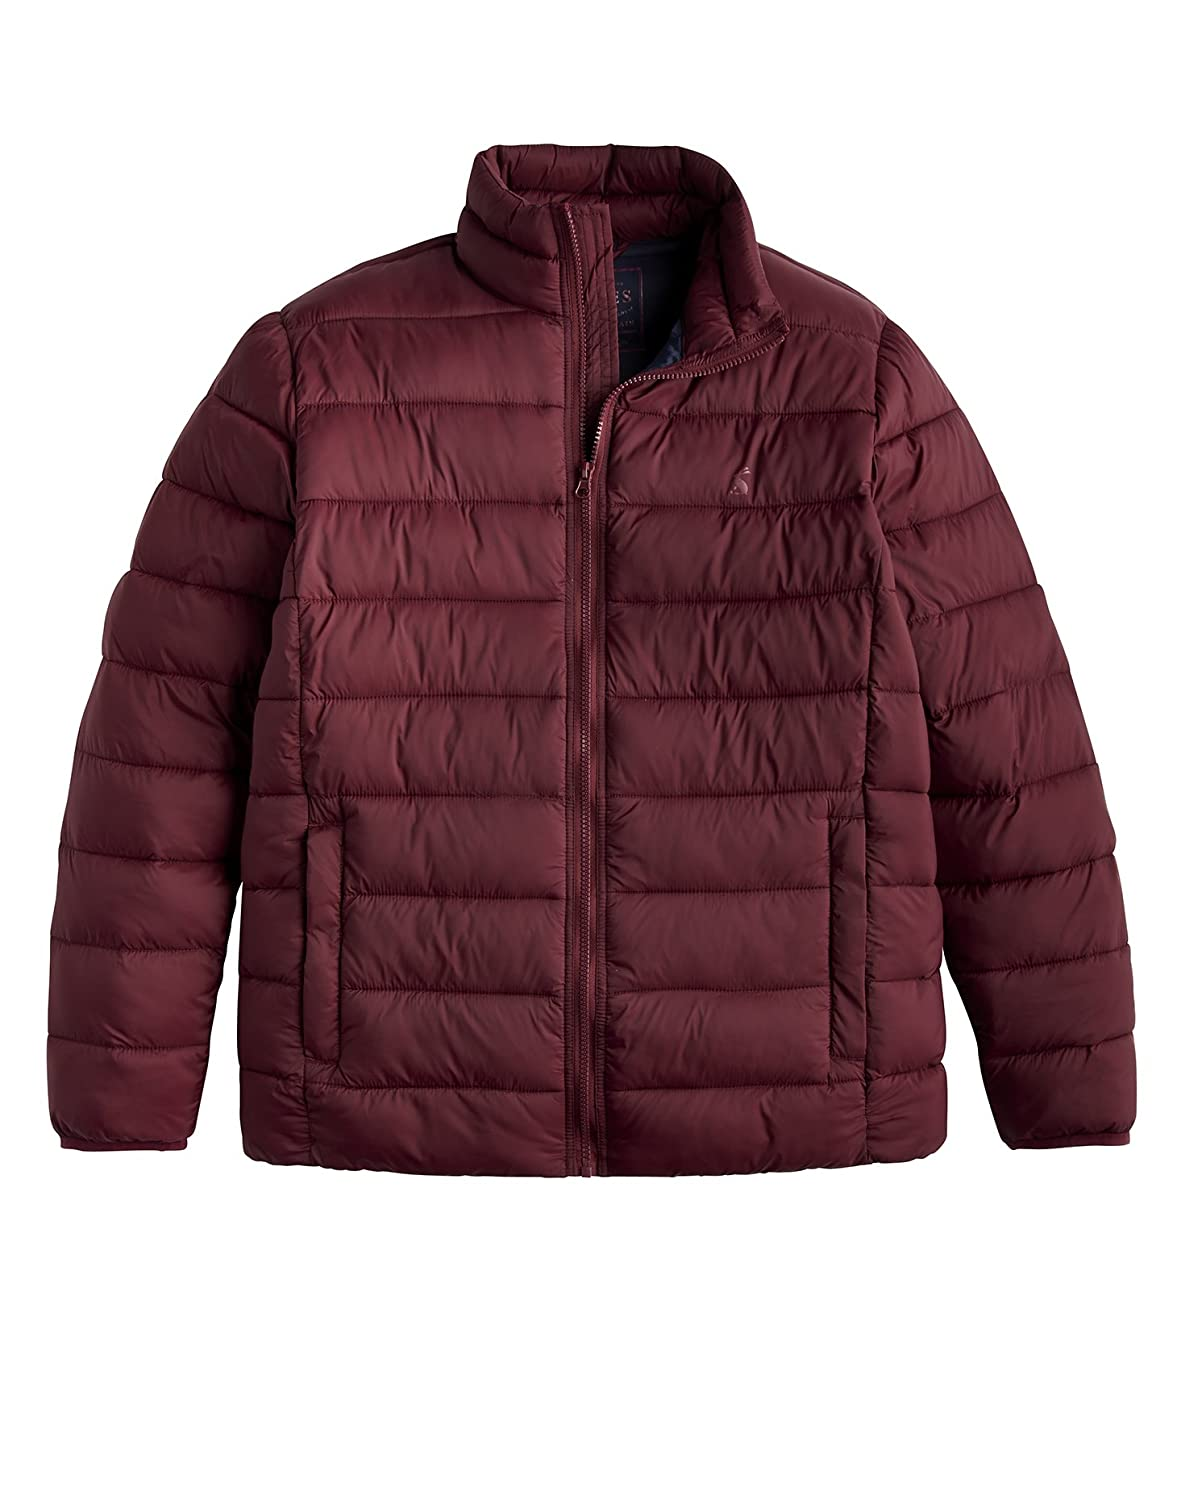 Joules Men's Go to Jacket Coat Y_GOTOJACKT